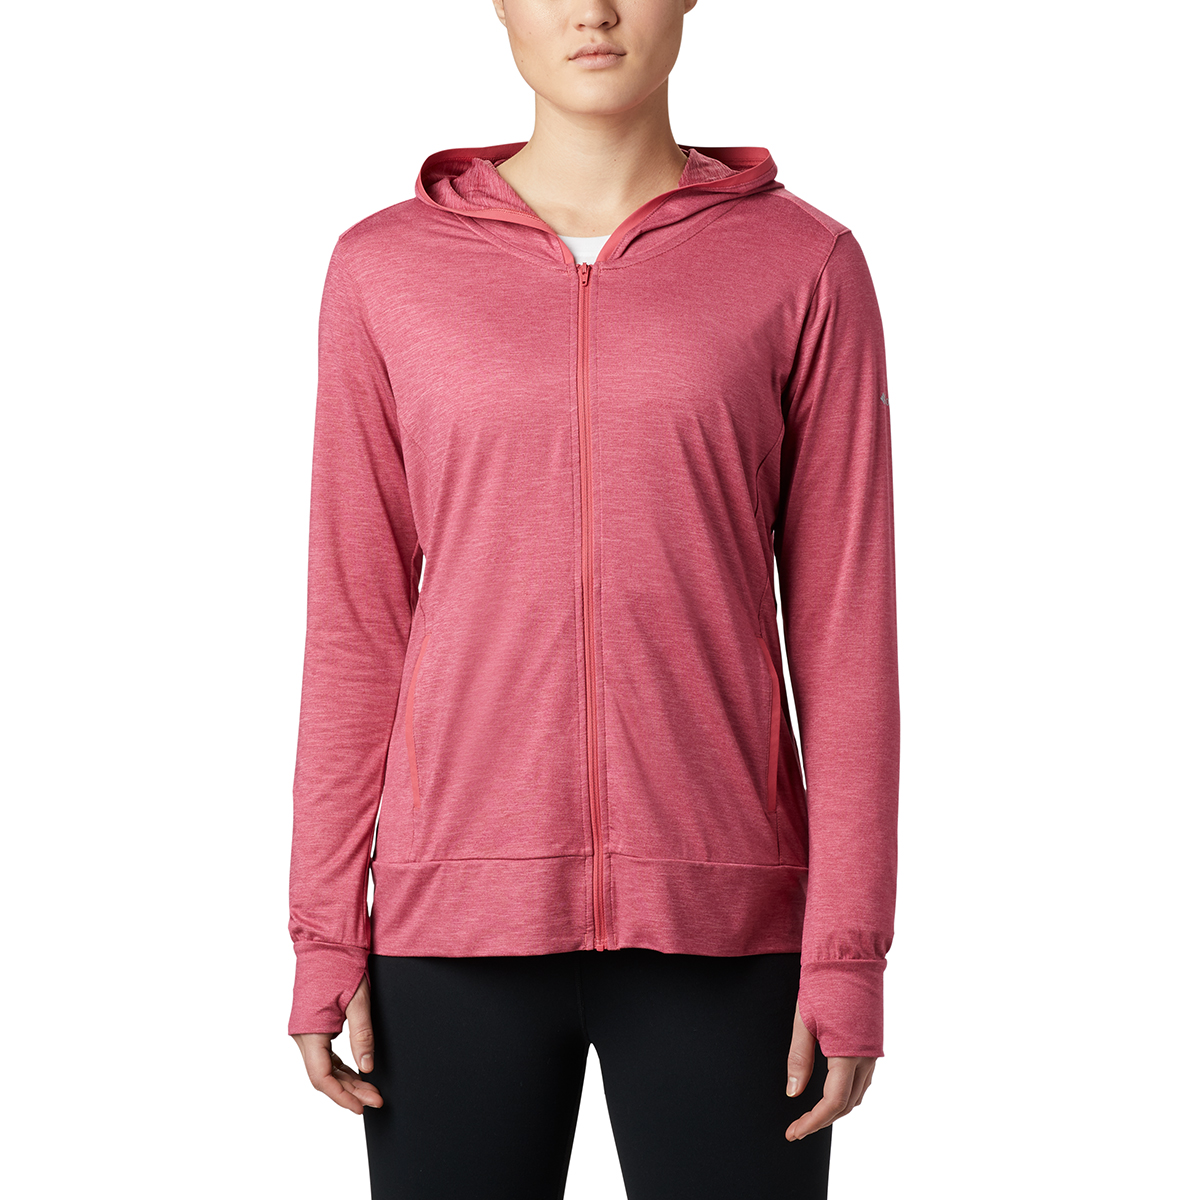 Columbia Women's Place To Place Ii Full Zip Hoodie - Red, S